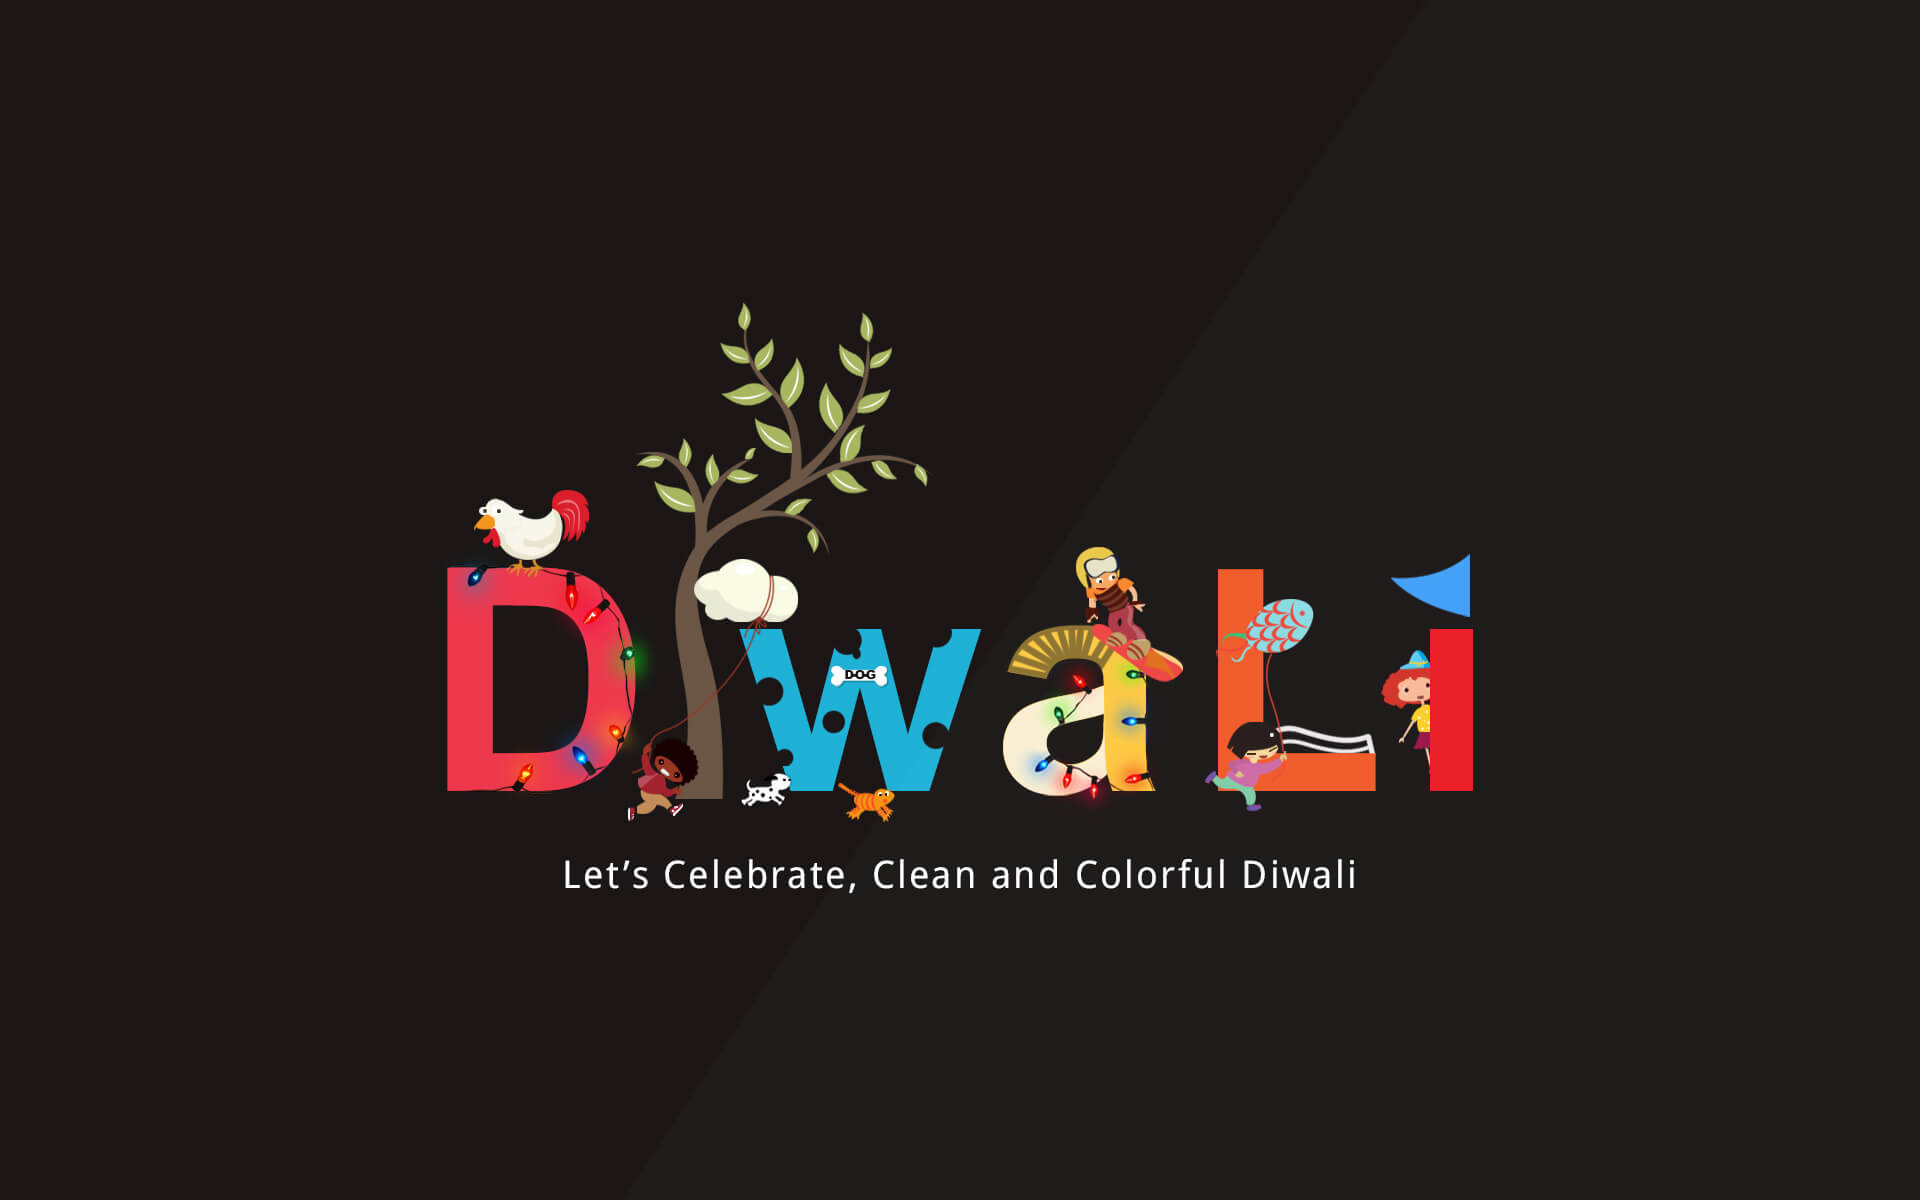 happy celebrate colorful diwali wishes hd image